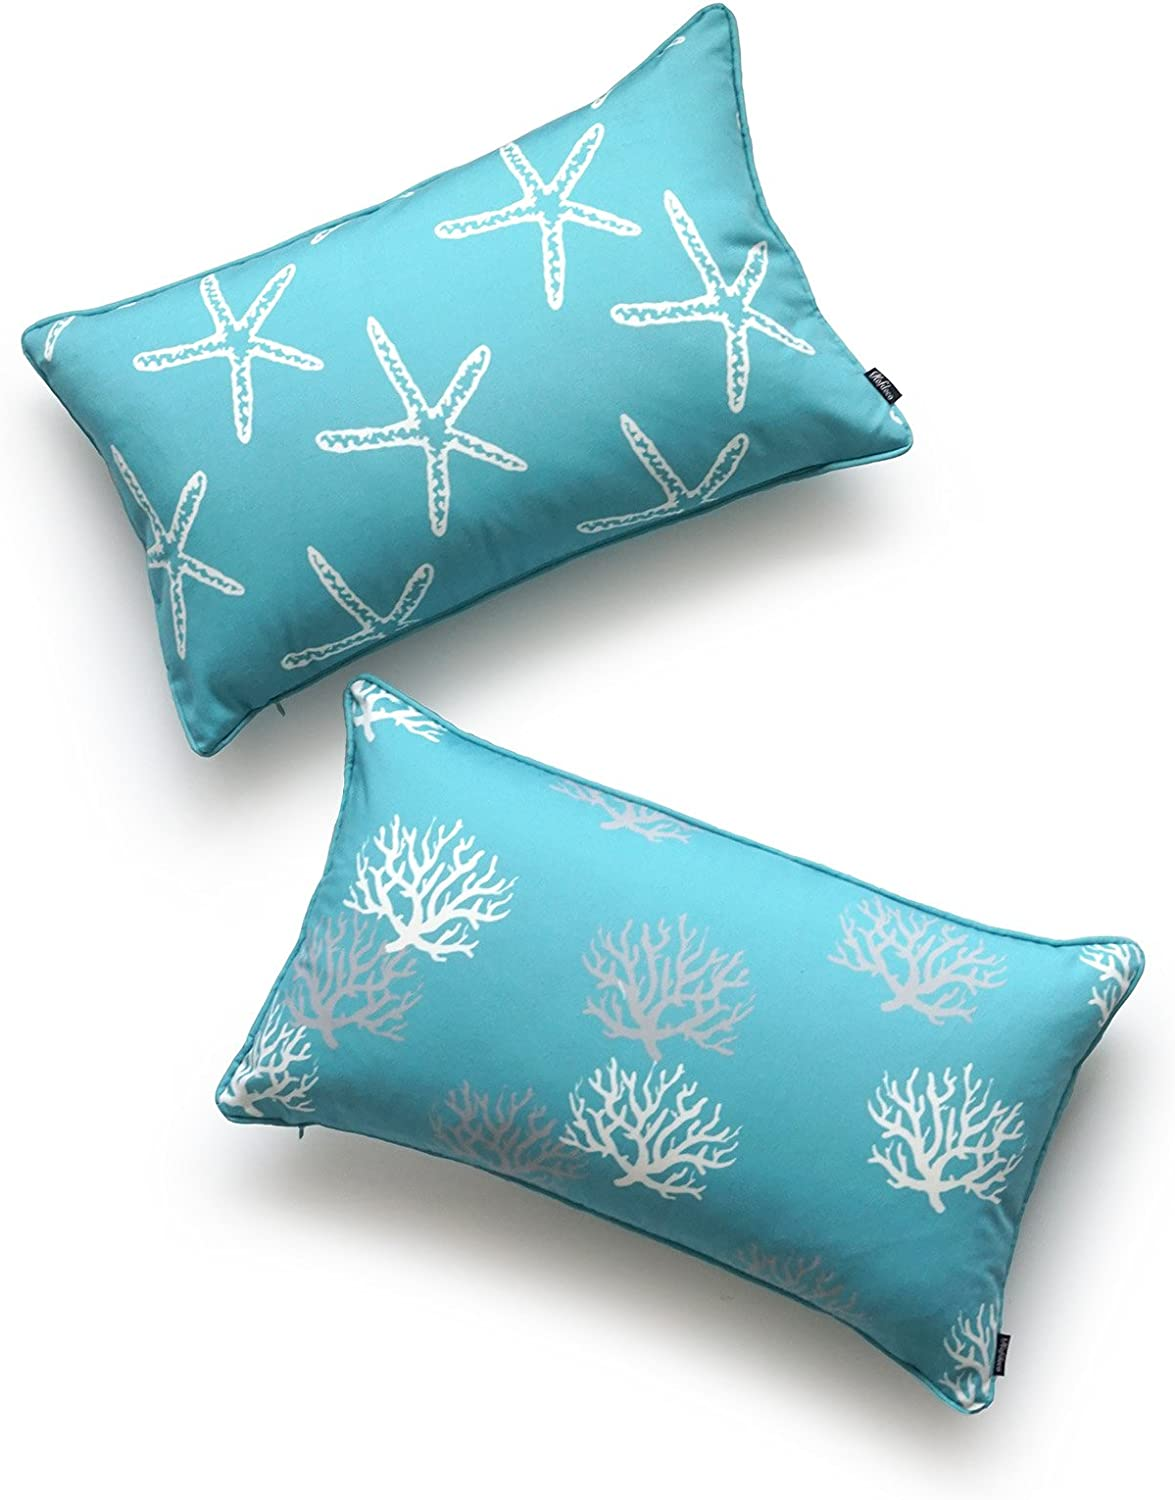 Hofdeco Decorative Outdoor Lumbar Pillow Cover Water Resistant Patio Garden Picnic Decor Aqua Sea Starfish Coral 12 x20 Set of 2